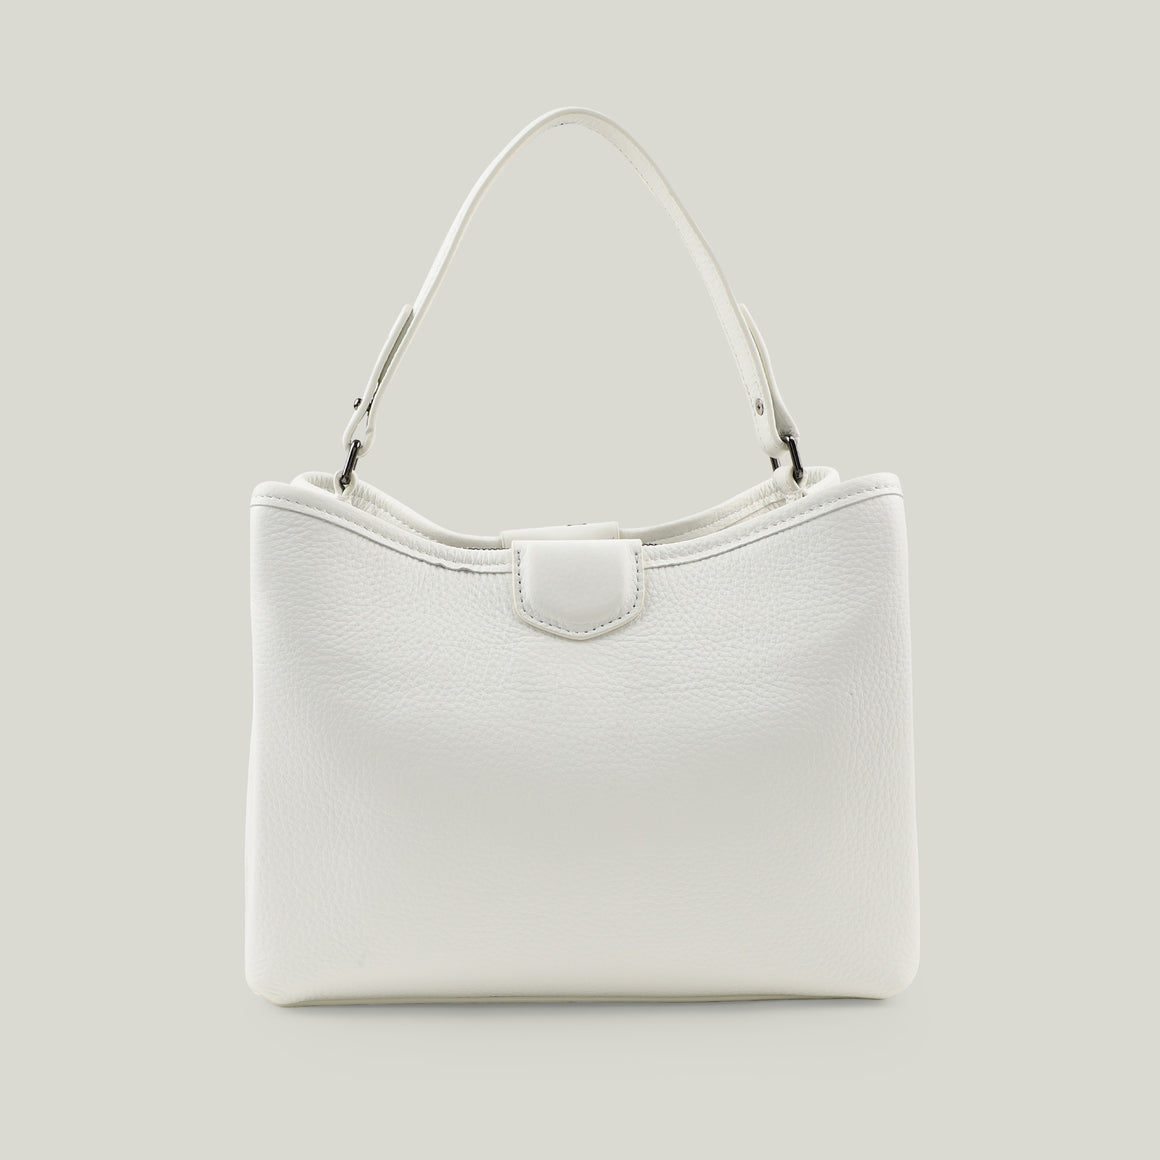 Tote bag Emerald Envy White